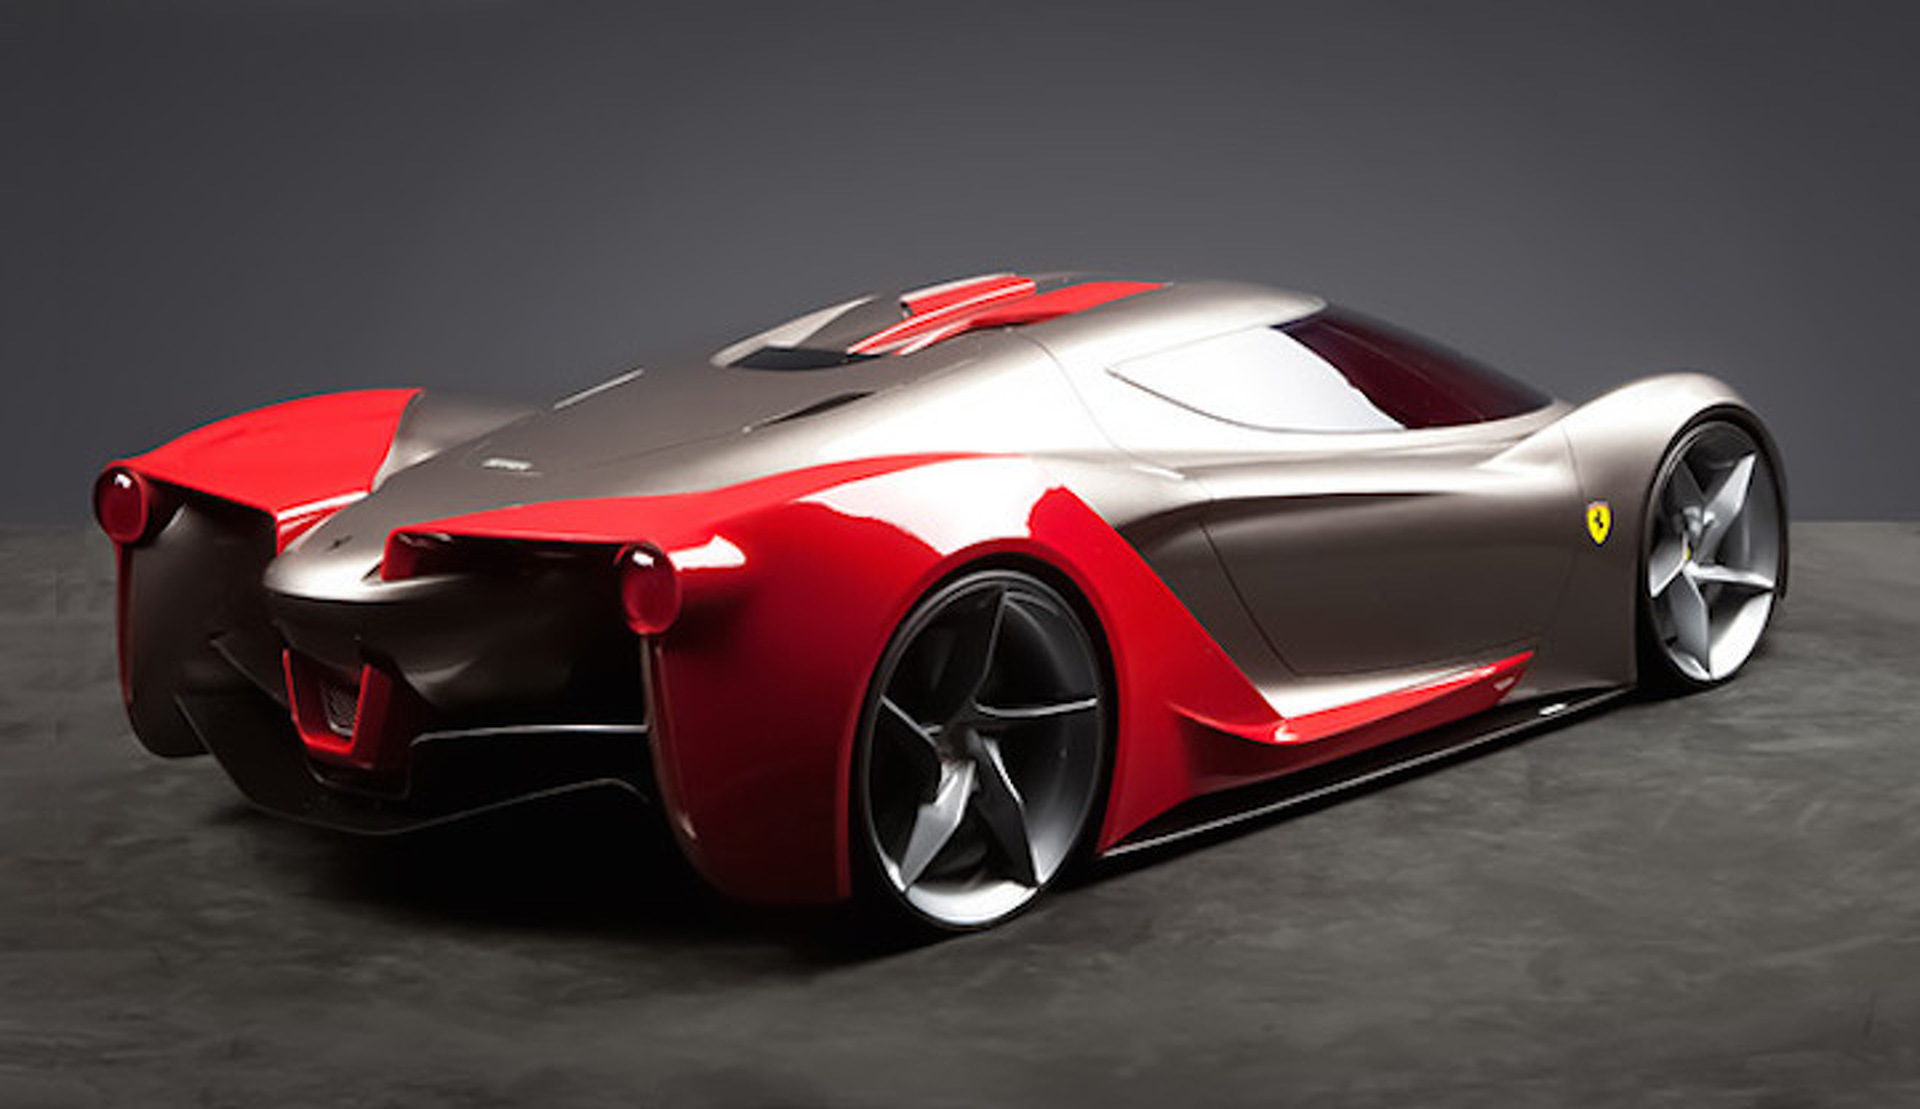 12 Ferrari Concept Cars That Could Preview the Future of the